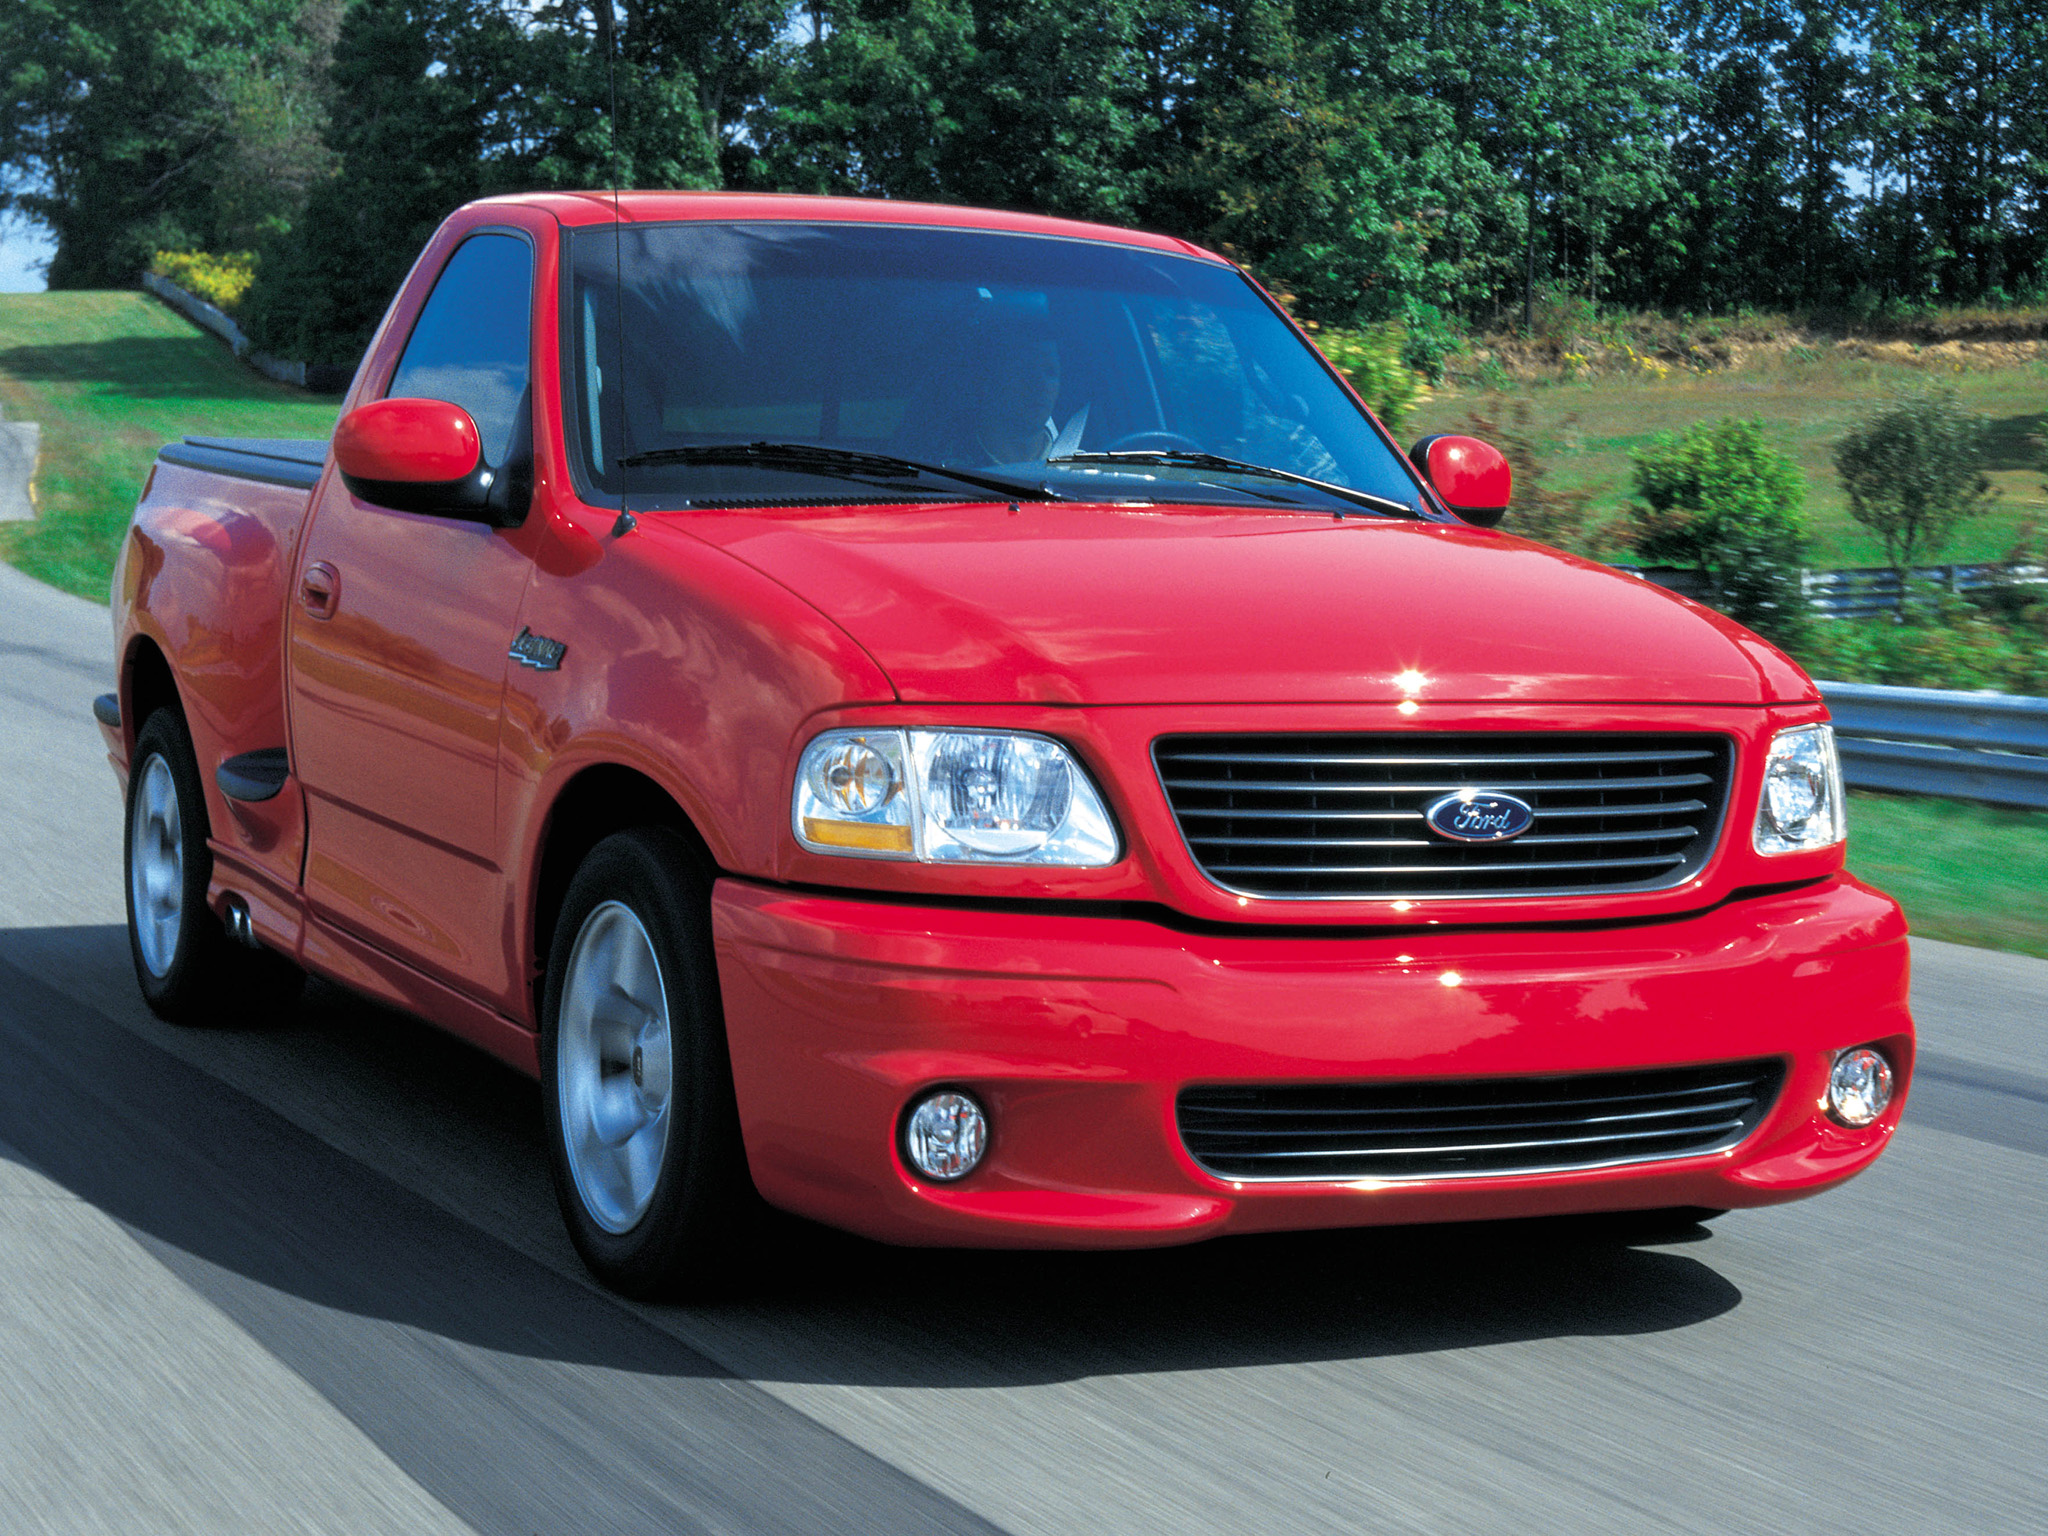 Ford Lightning Specs >> Ford lightning wallpaper (44 Wallpapers) – Adorable Wallpapers